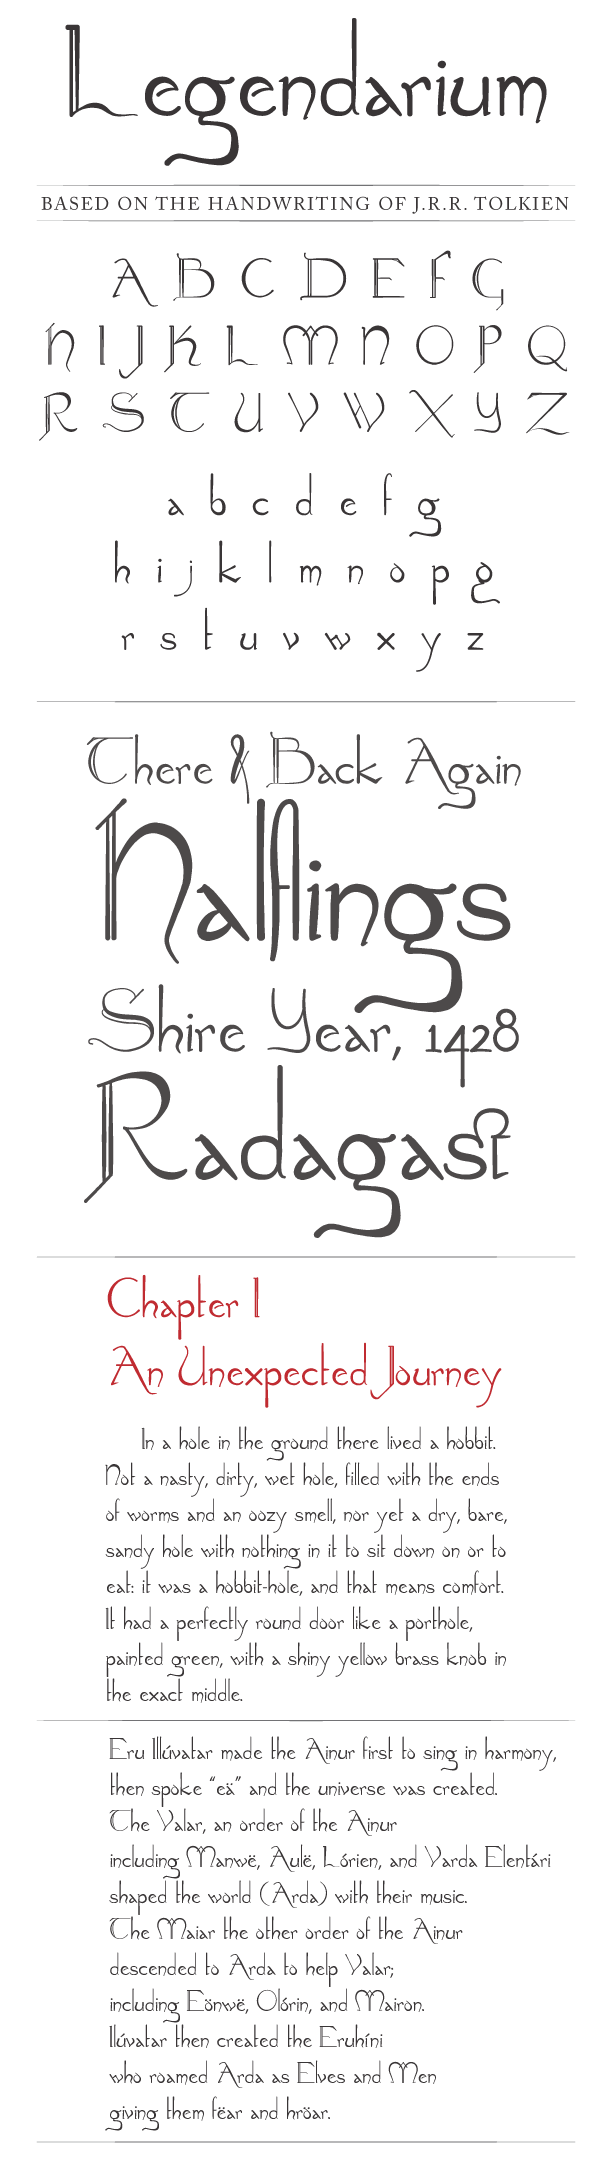 J.R.R. Tolkien lord of the ring middle earth cartography handwriting Script Typeface font fantasy literature hobbit